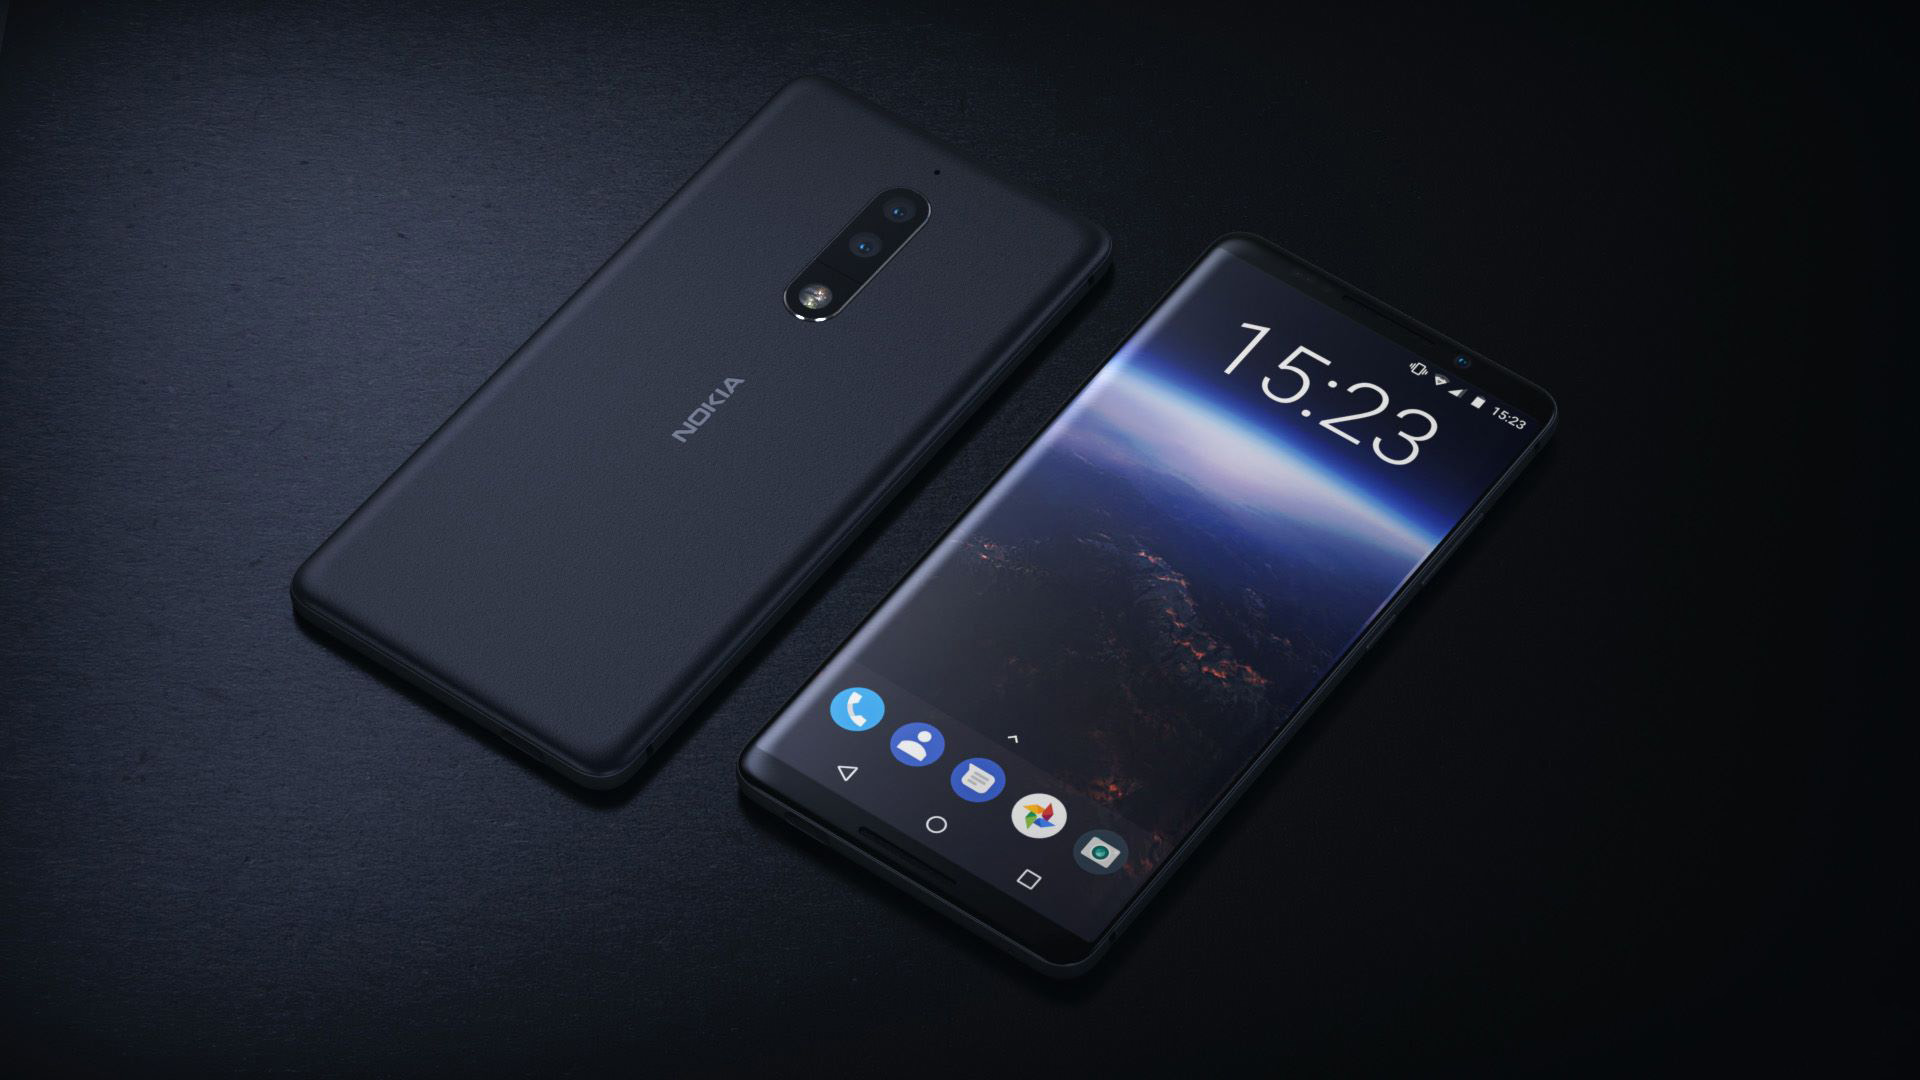 Nokia is working on a gaming smartphone